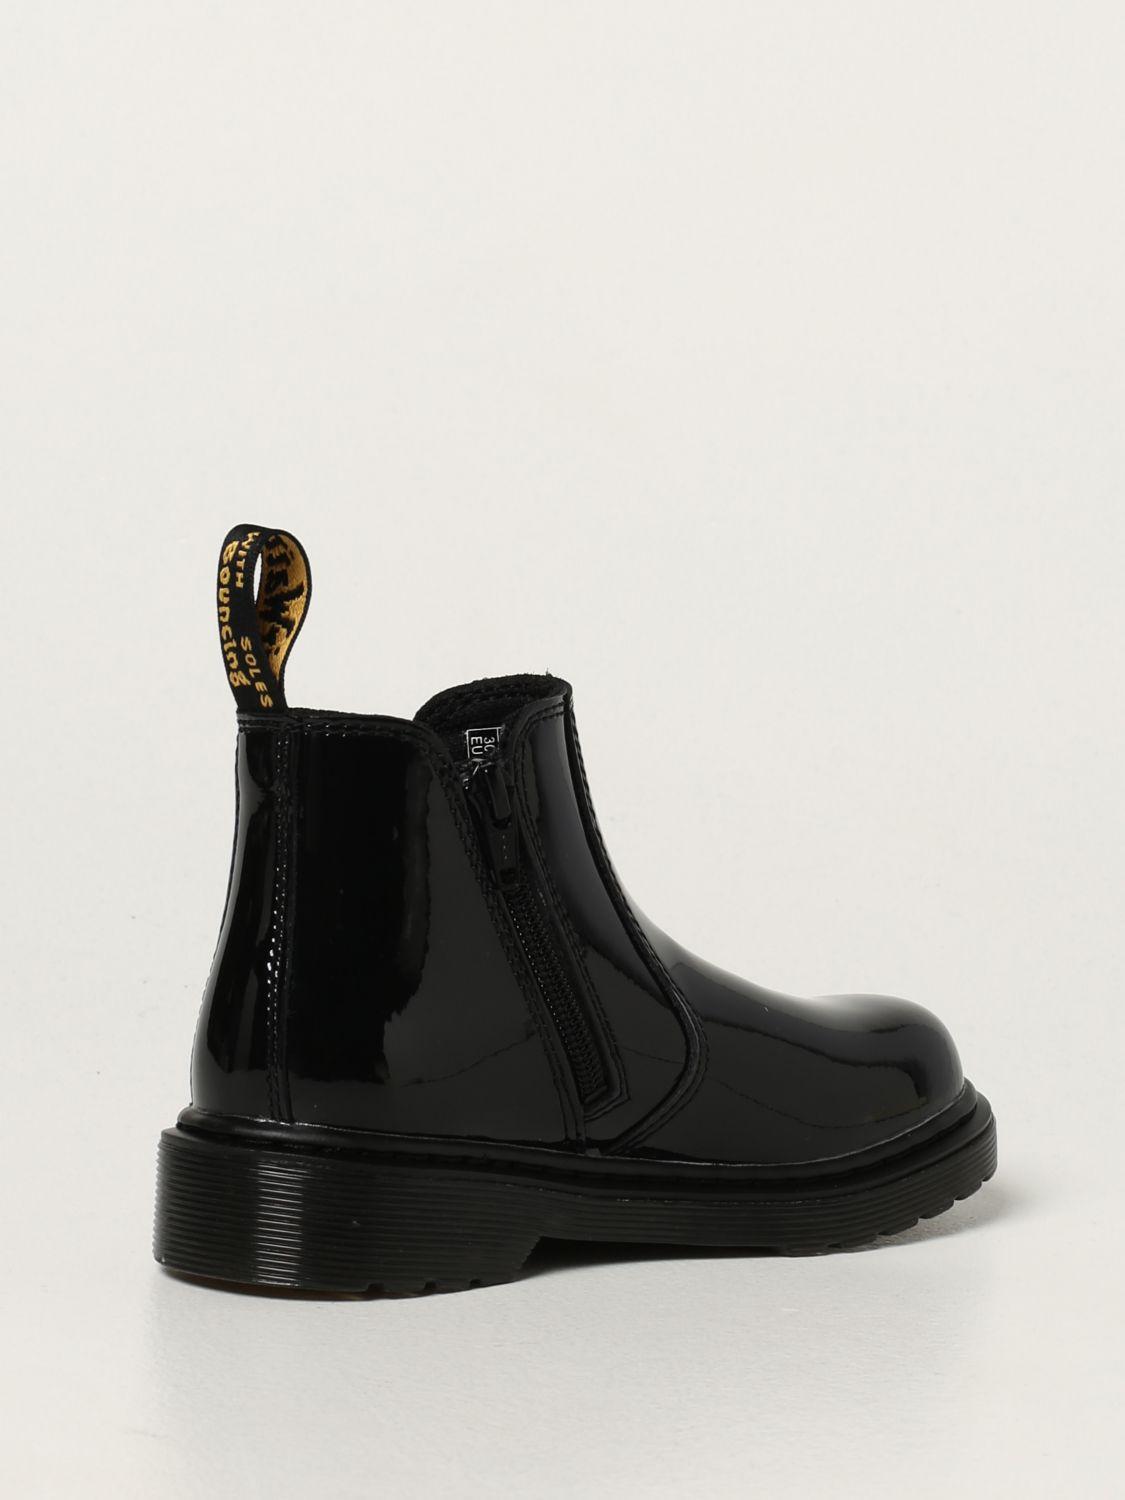 Shoes Dr. Martens: Dr. Martens 2976 Chelsea boots in patent leather black 3